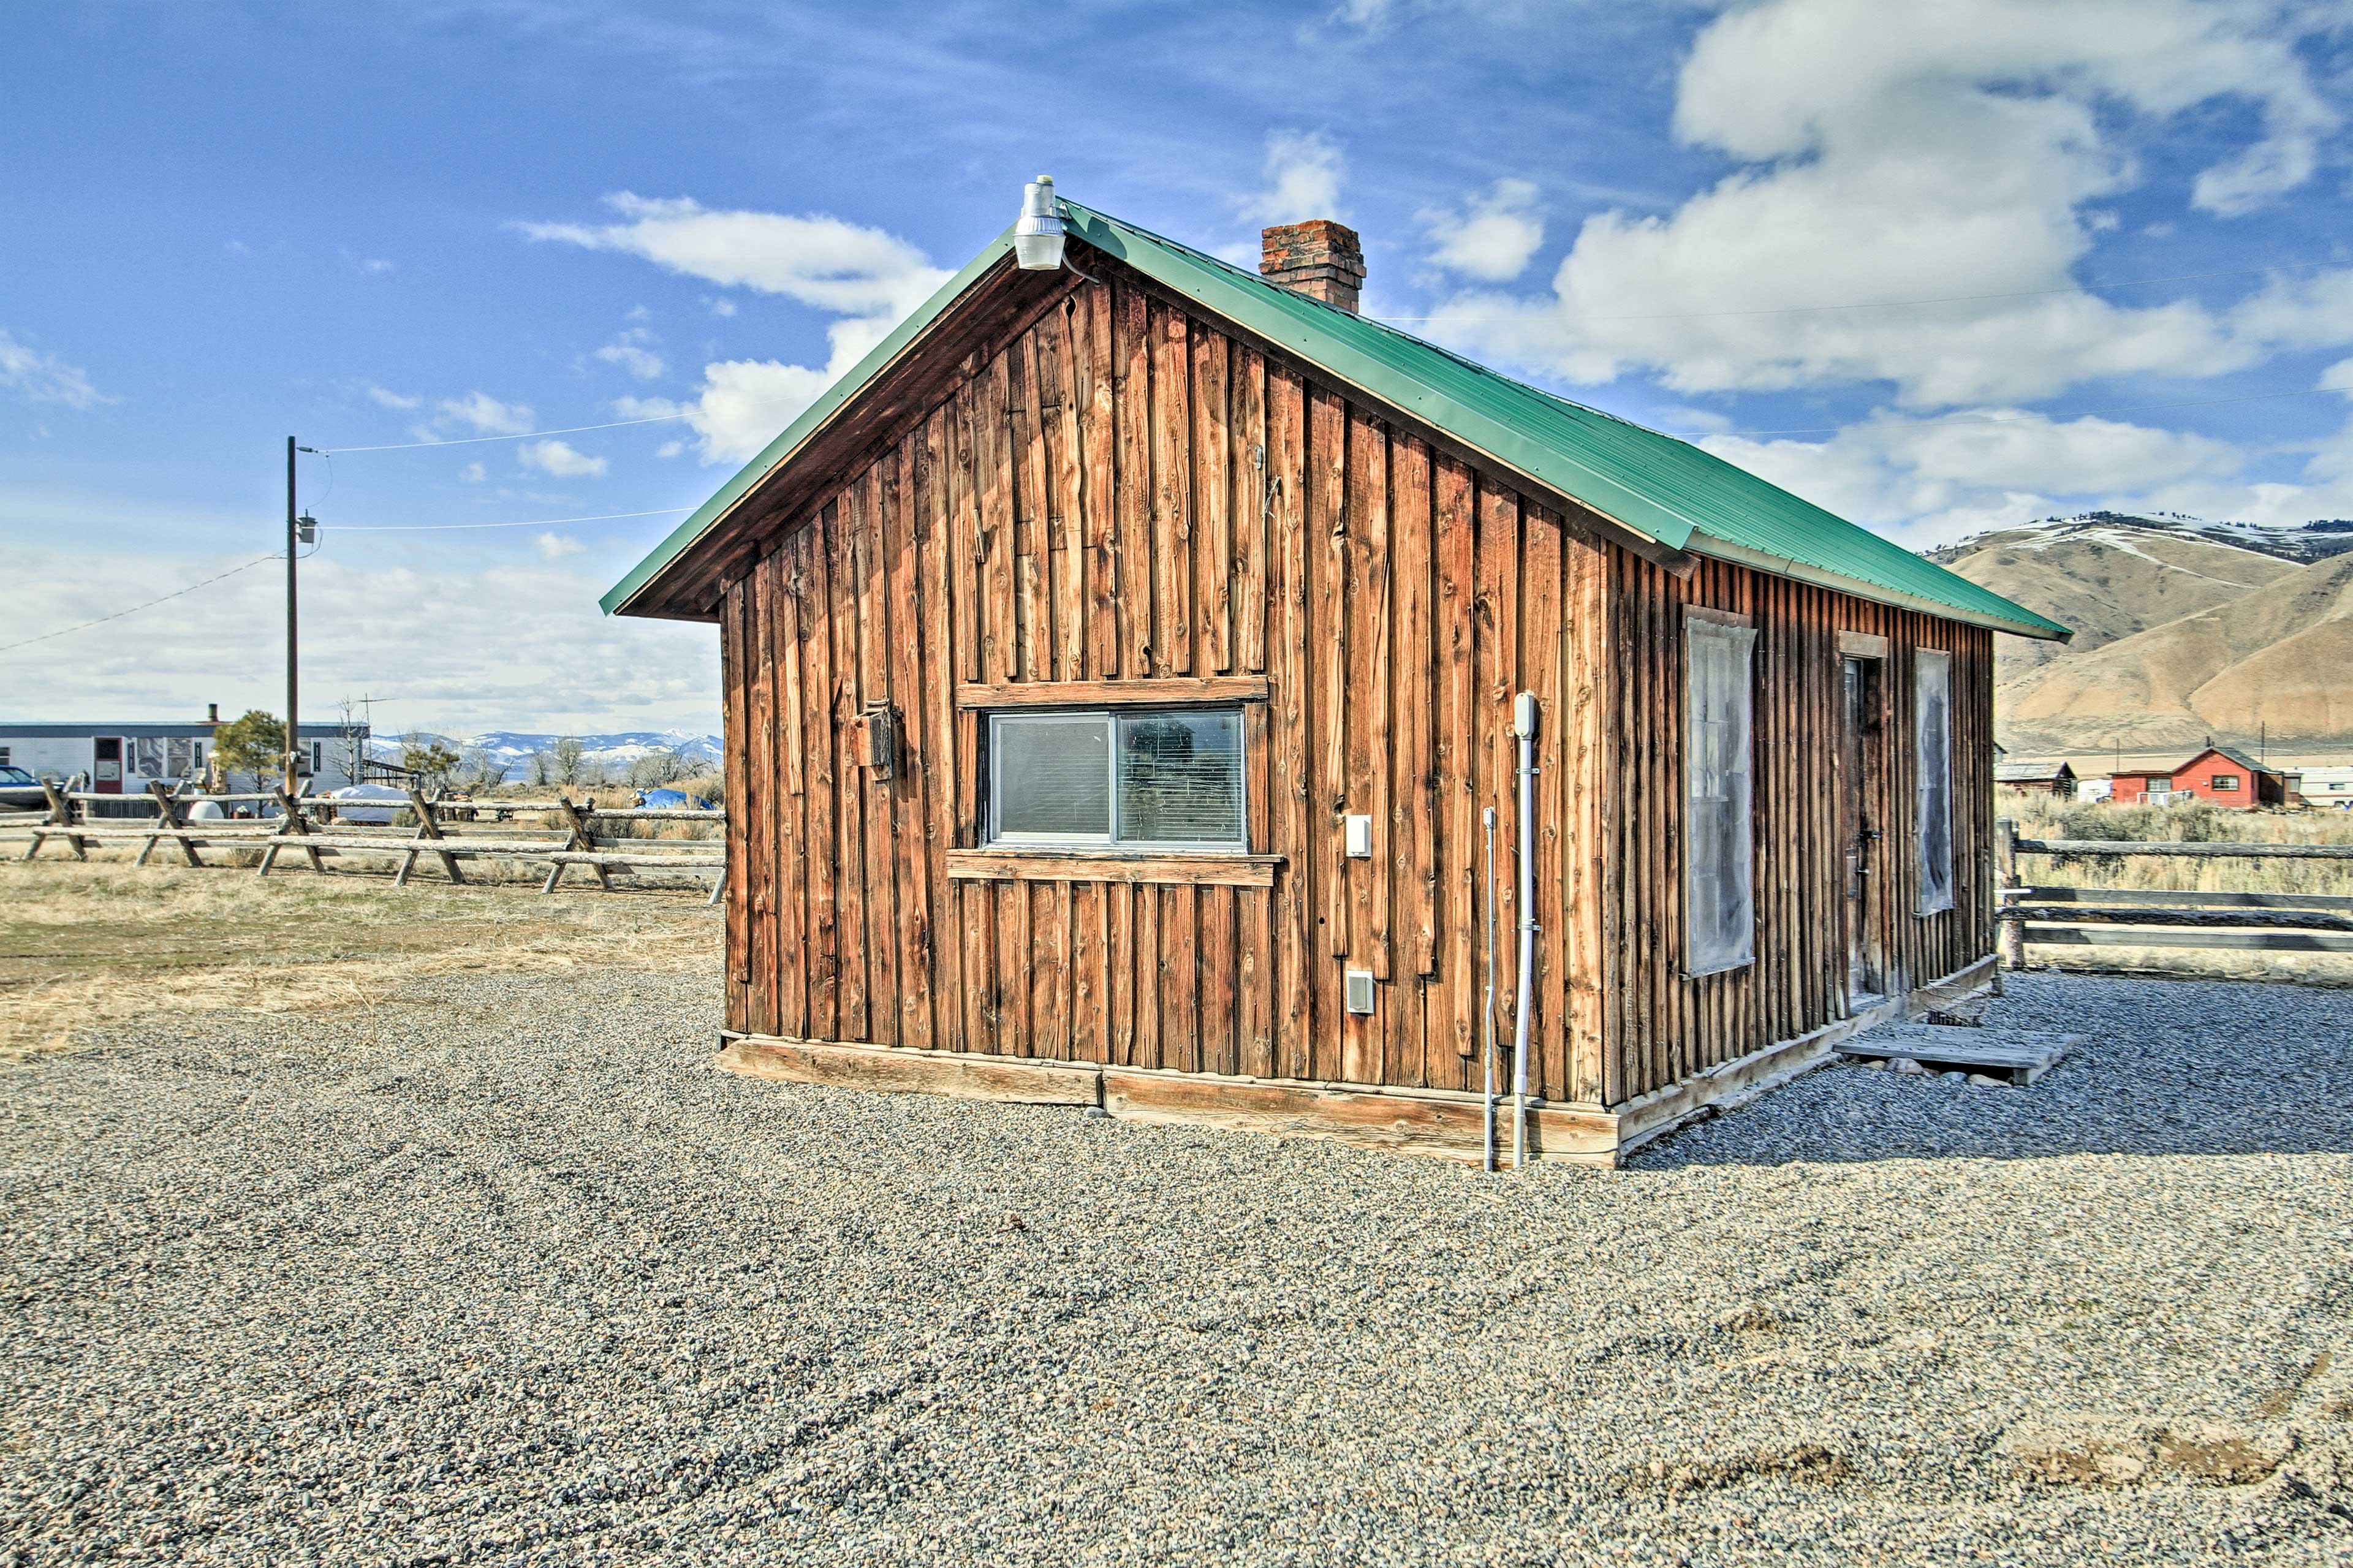 Utilize the original, rustic cabin for events and entertaining.